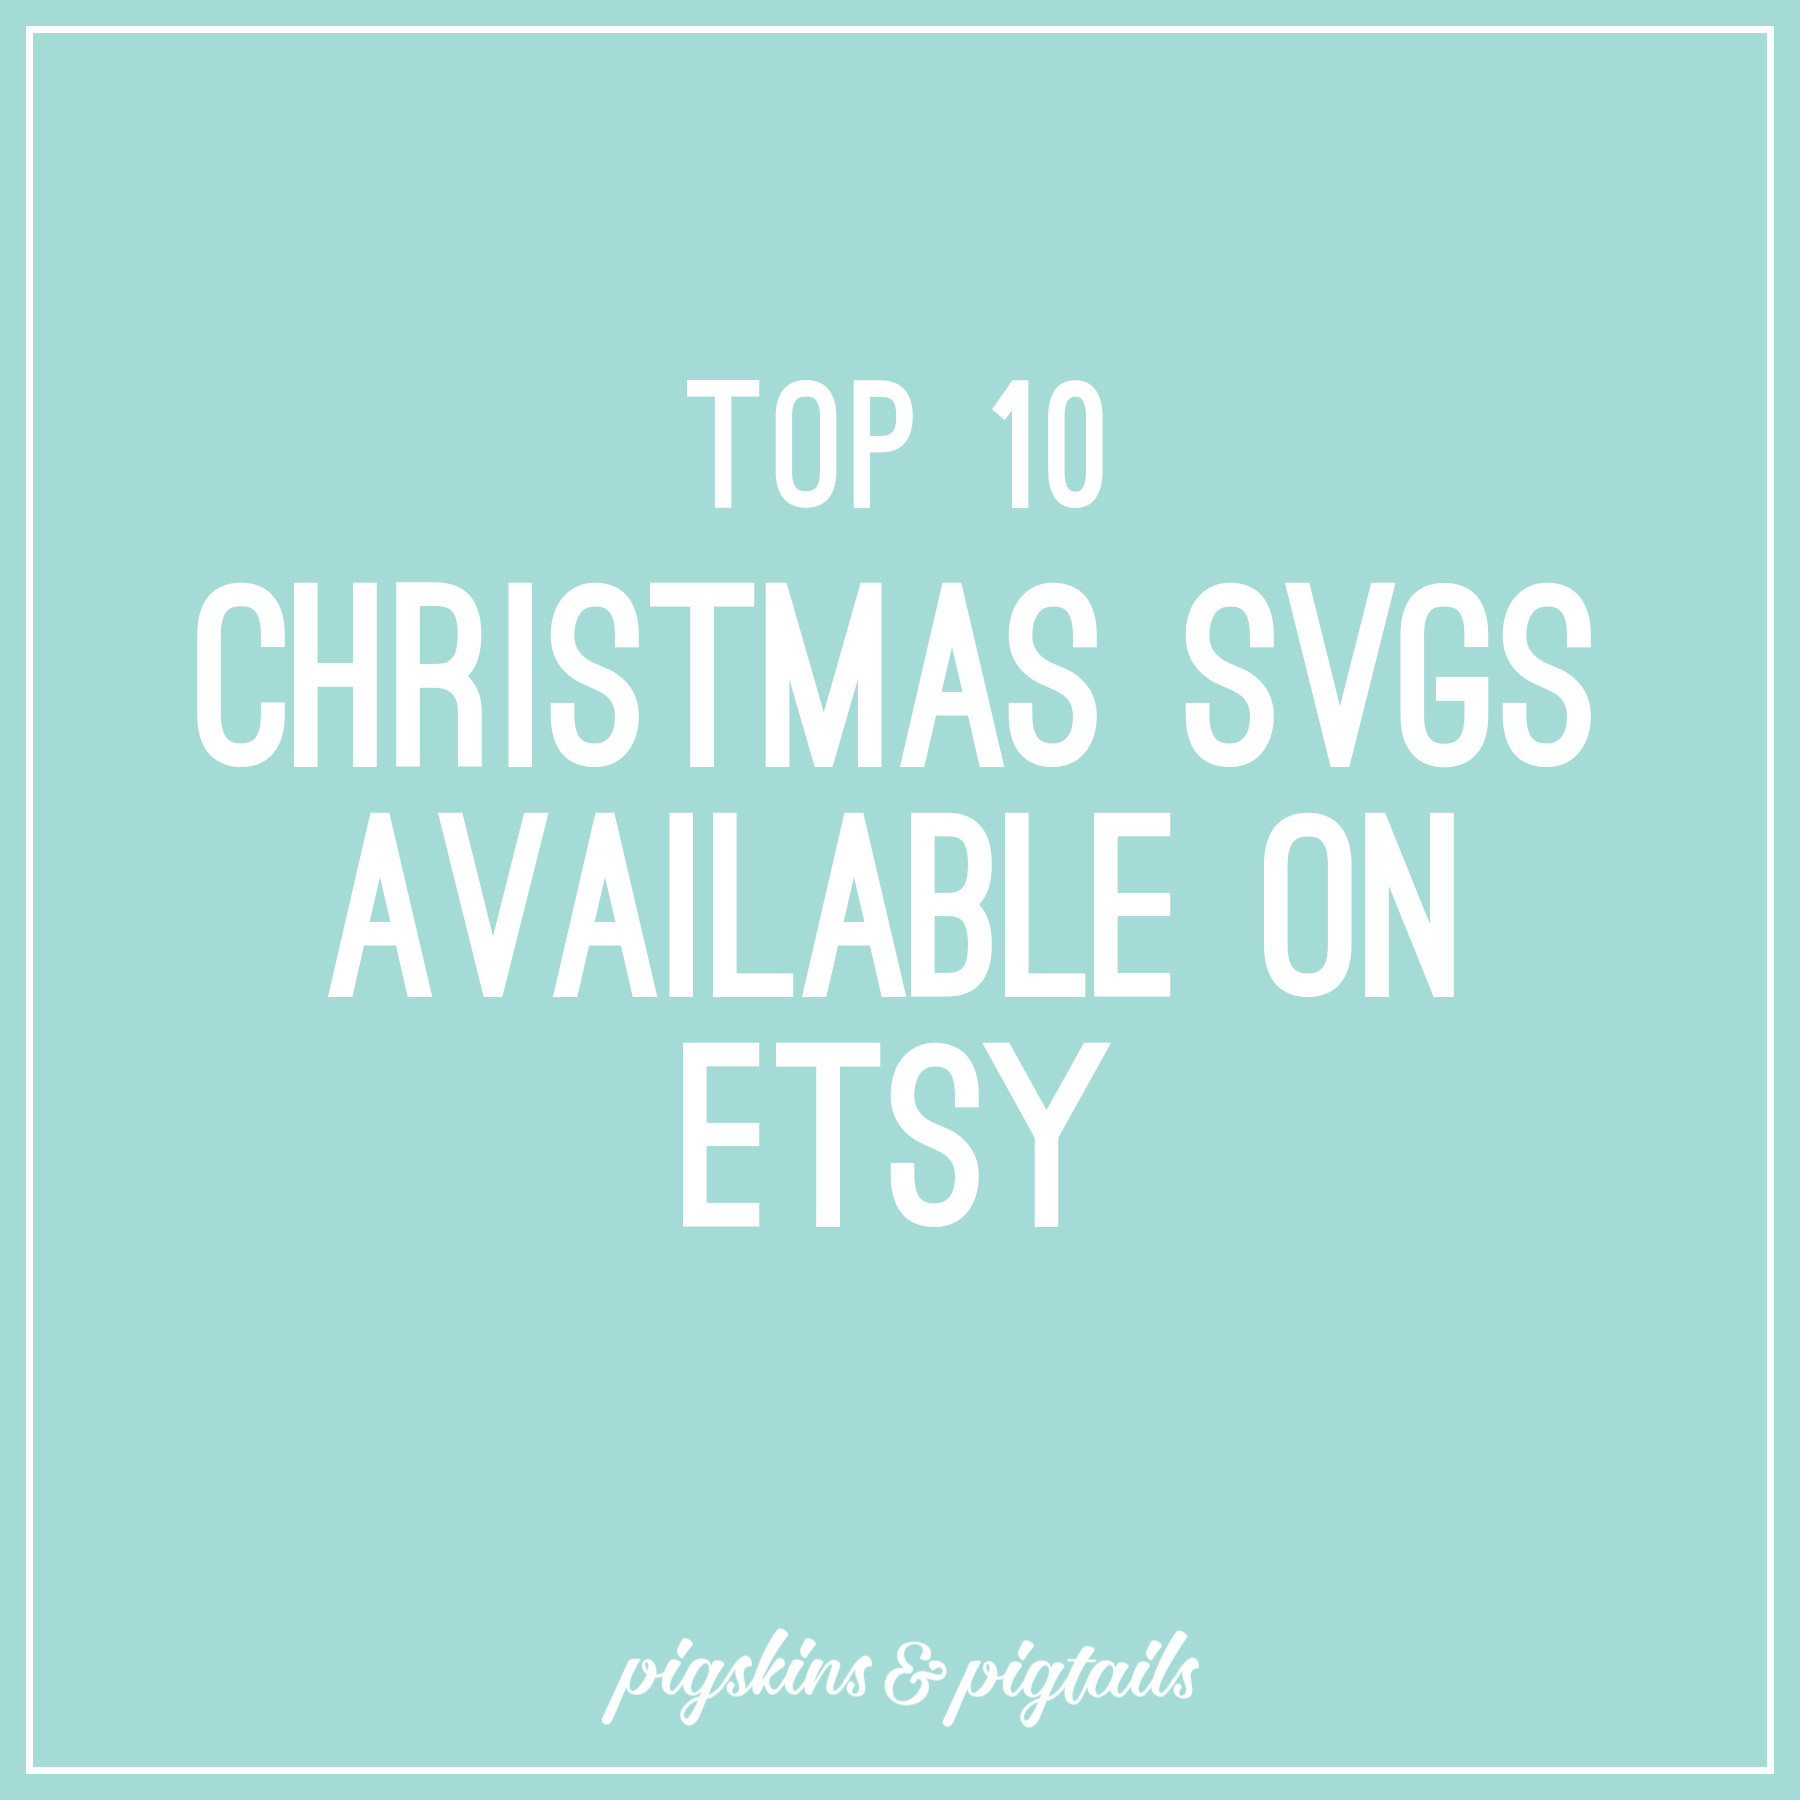 Top 10 Christmas SVGs Available on Etsy